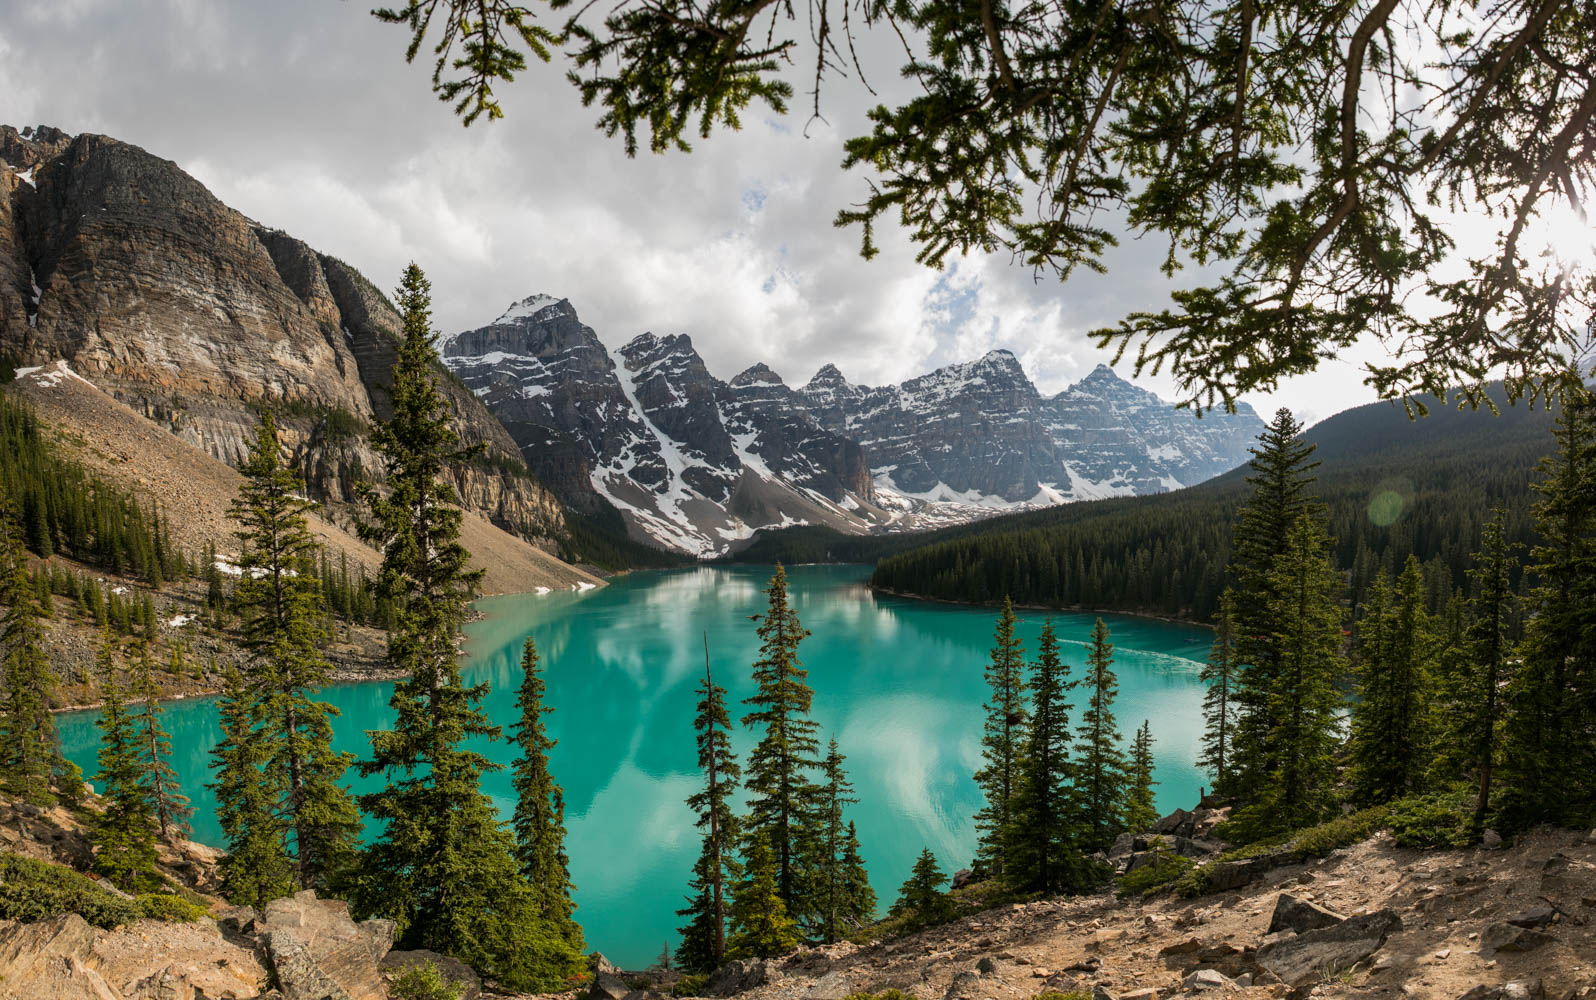 canada canadian best places tourism outdoor tourist hike travel guide explore  banff jasper  alberta lake louise moraine rocky mountains